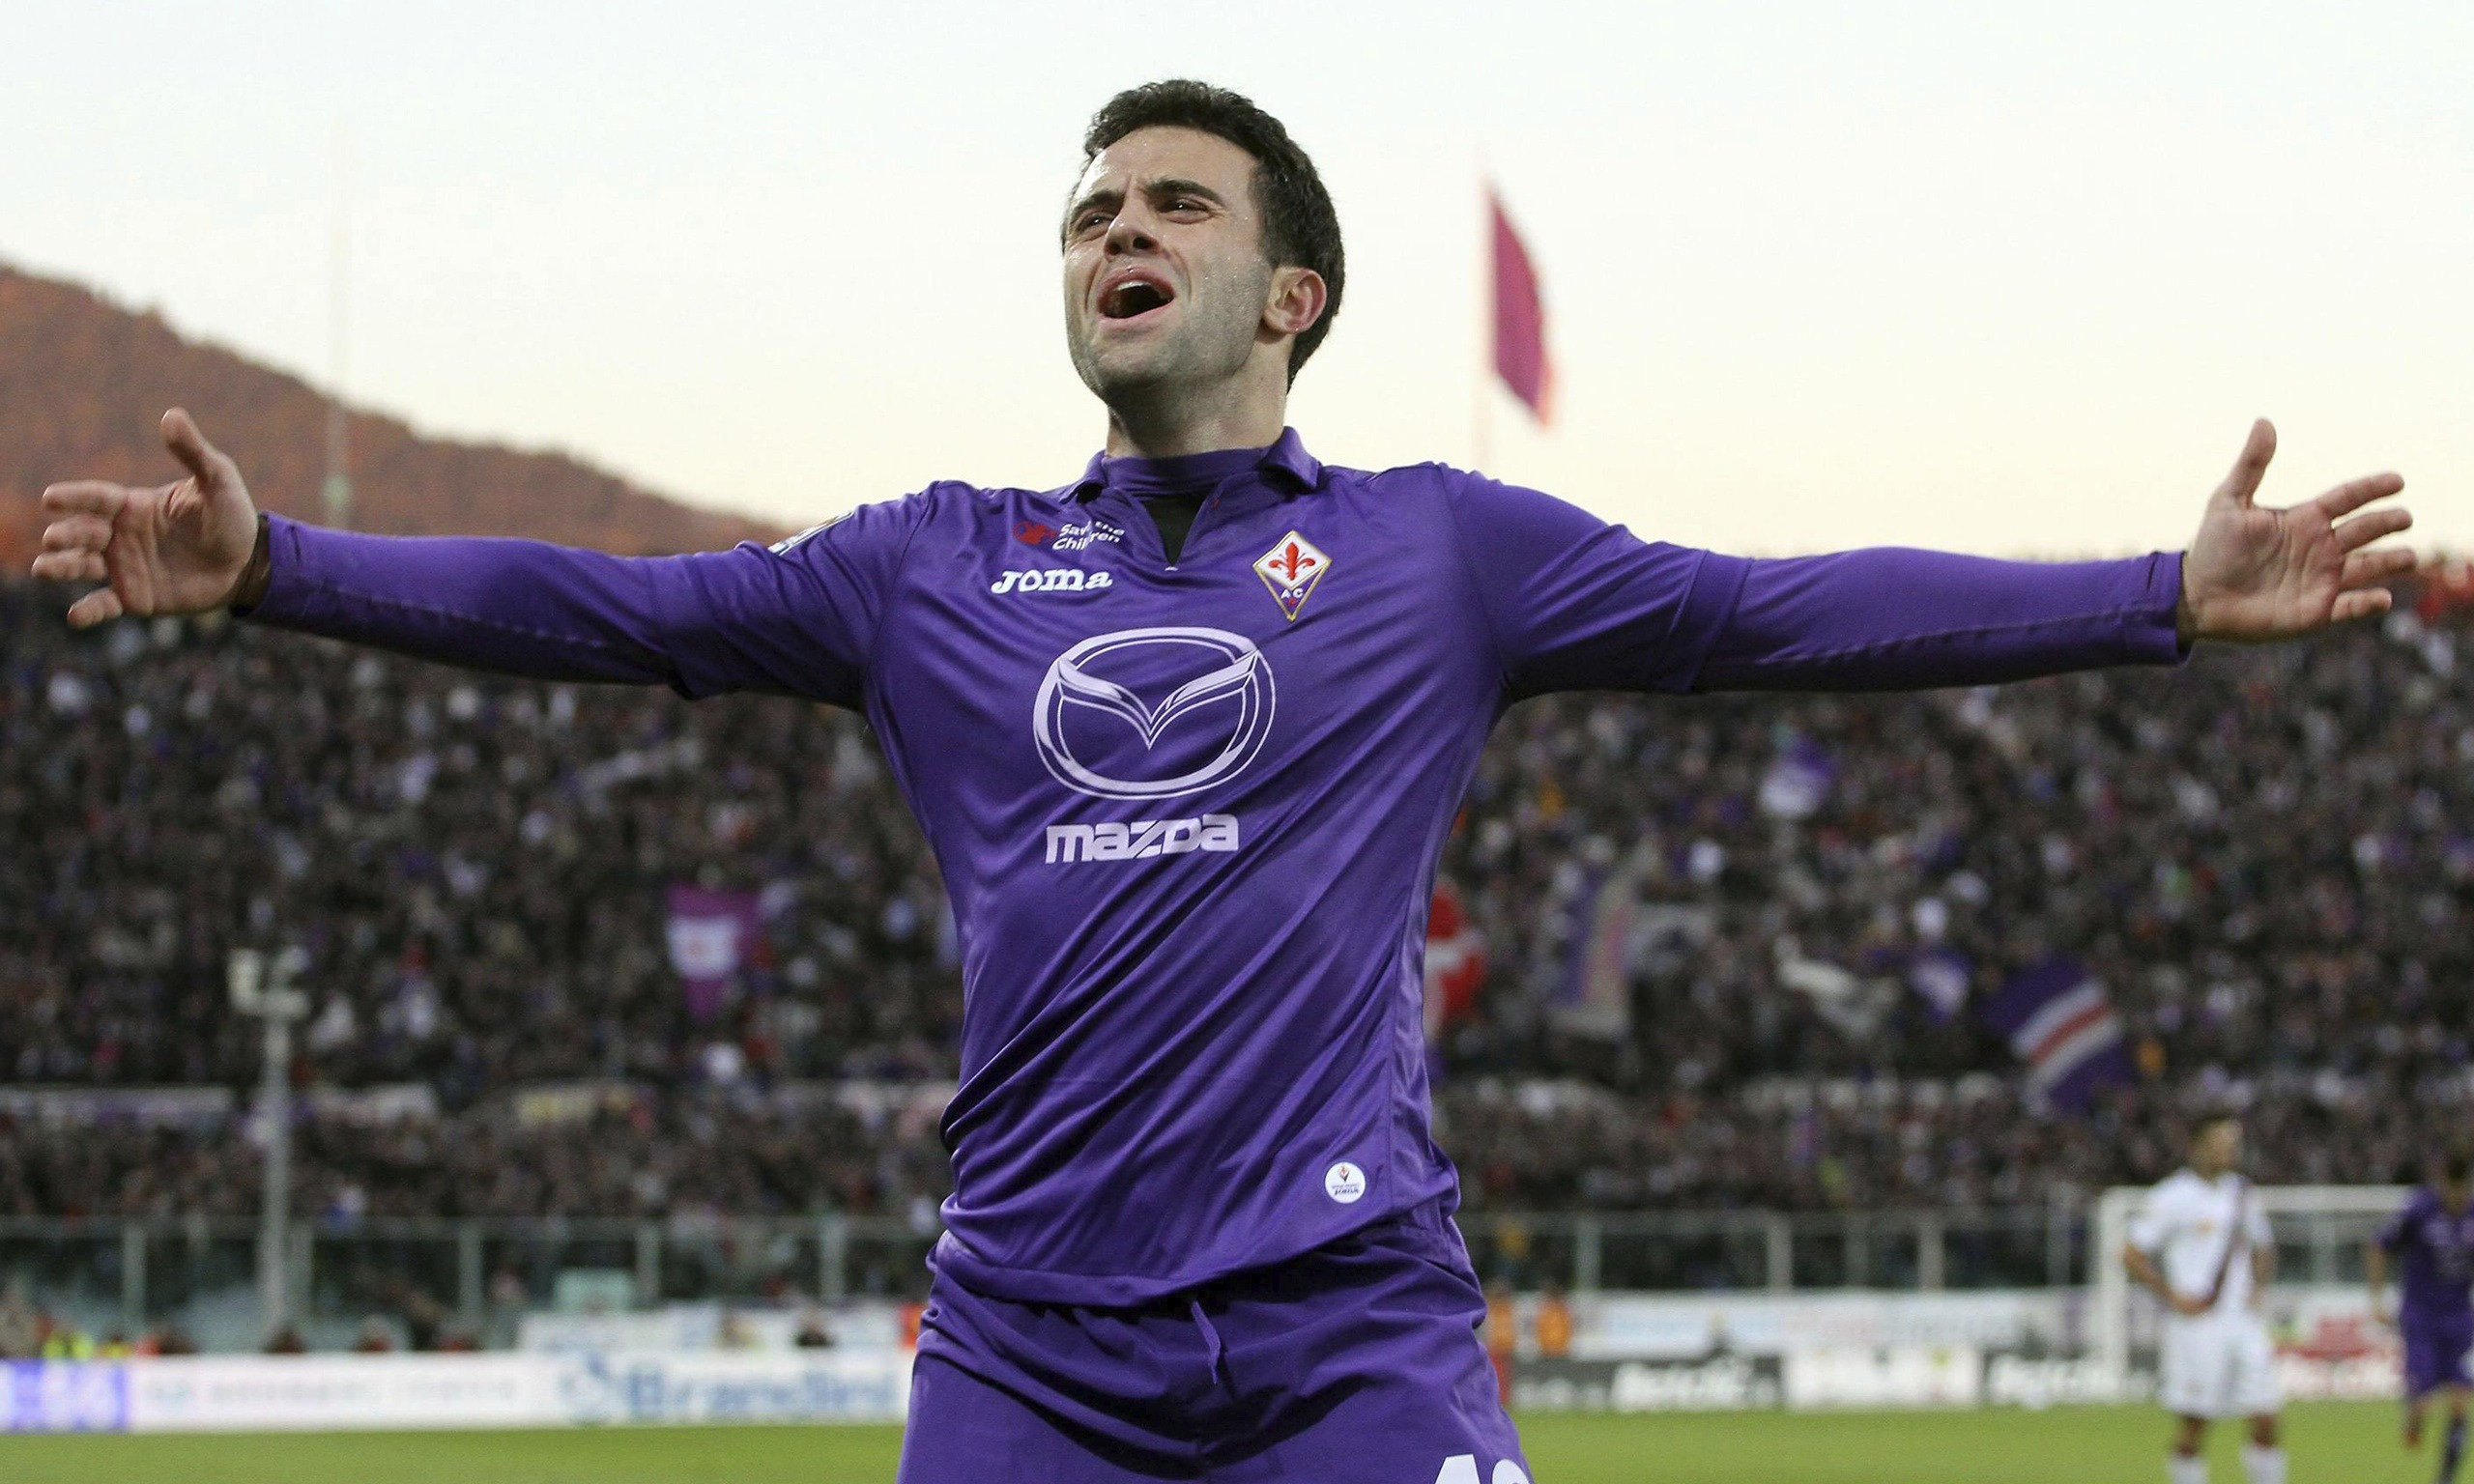 Giuseppe Rossi in action for Fiorentina